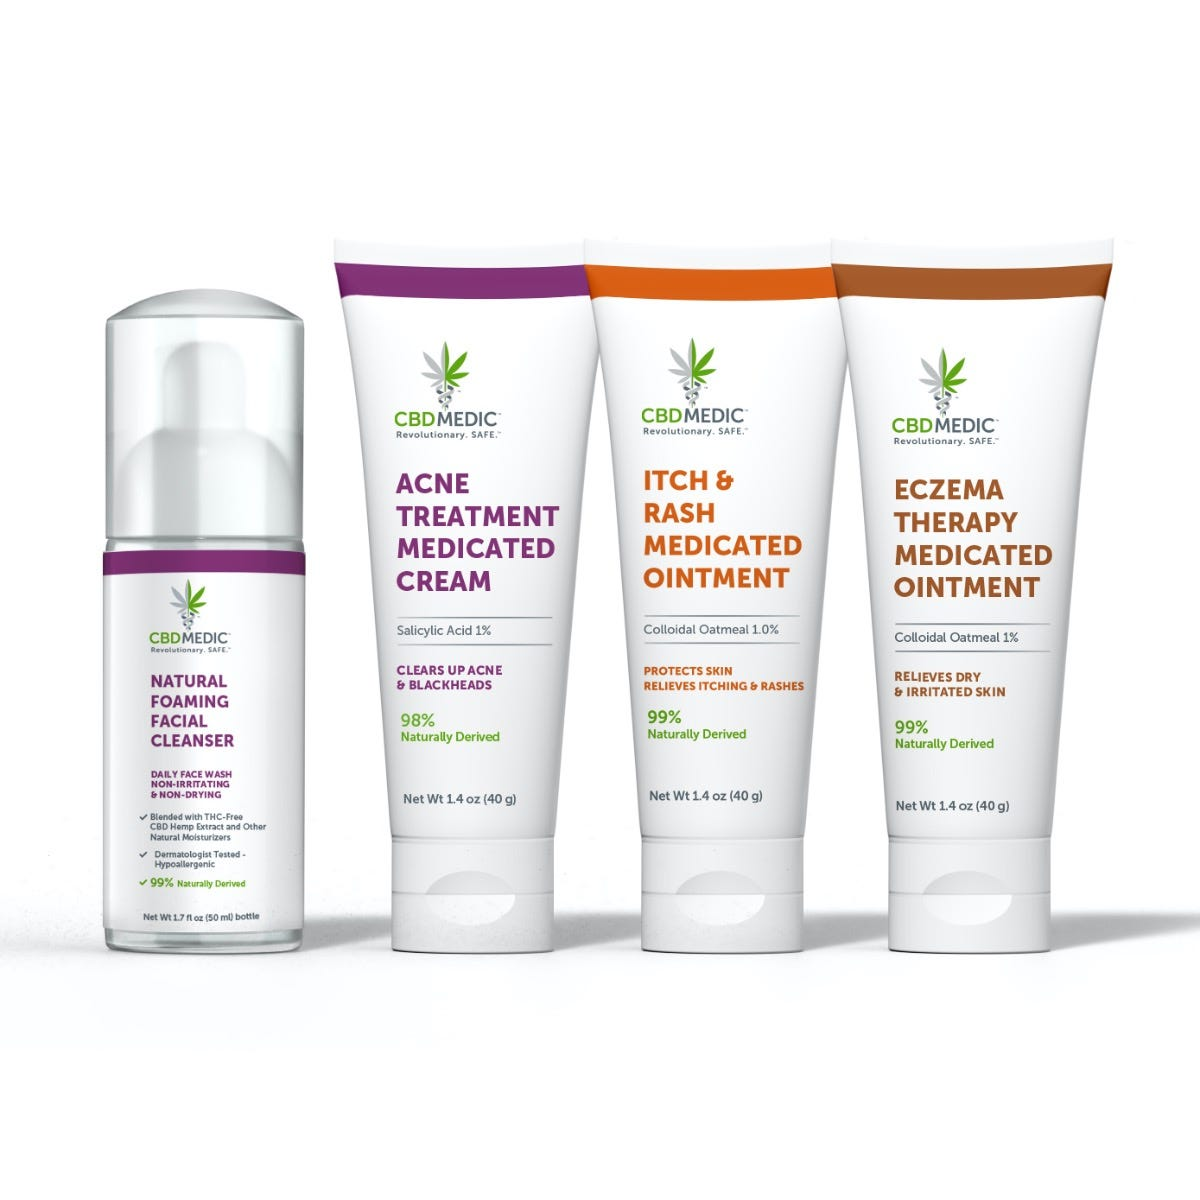 The Skincare Collection